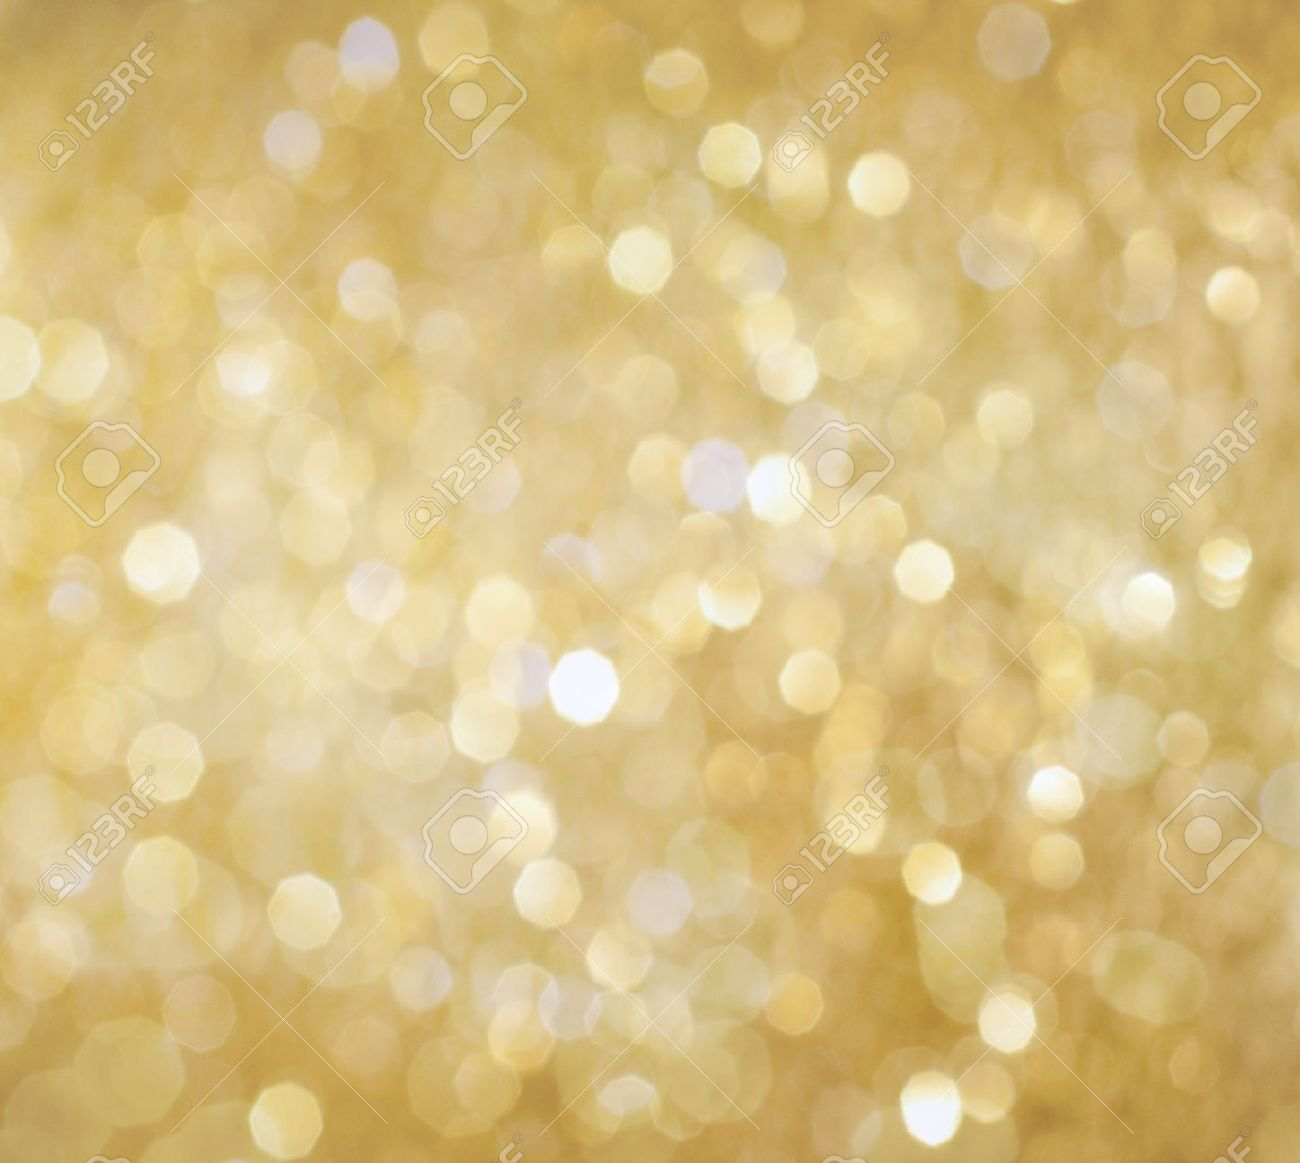 Light Gold Background Images 08 1300x1163